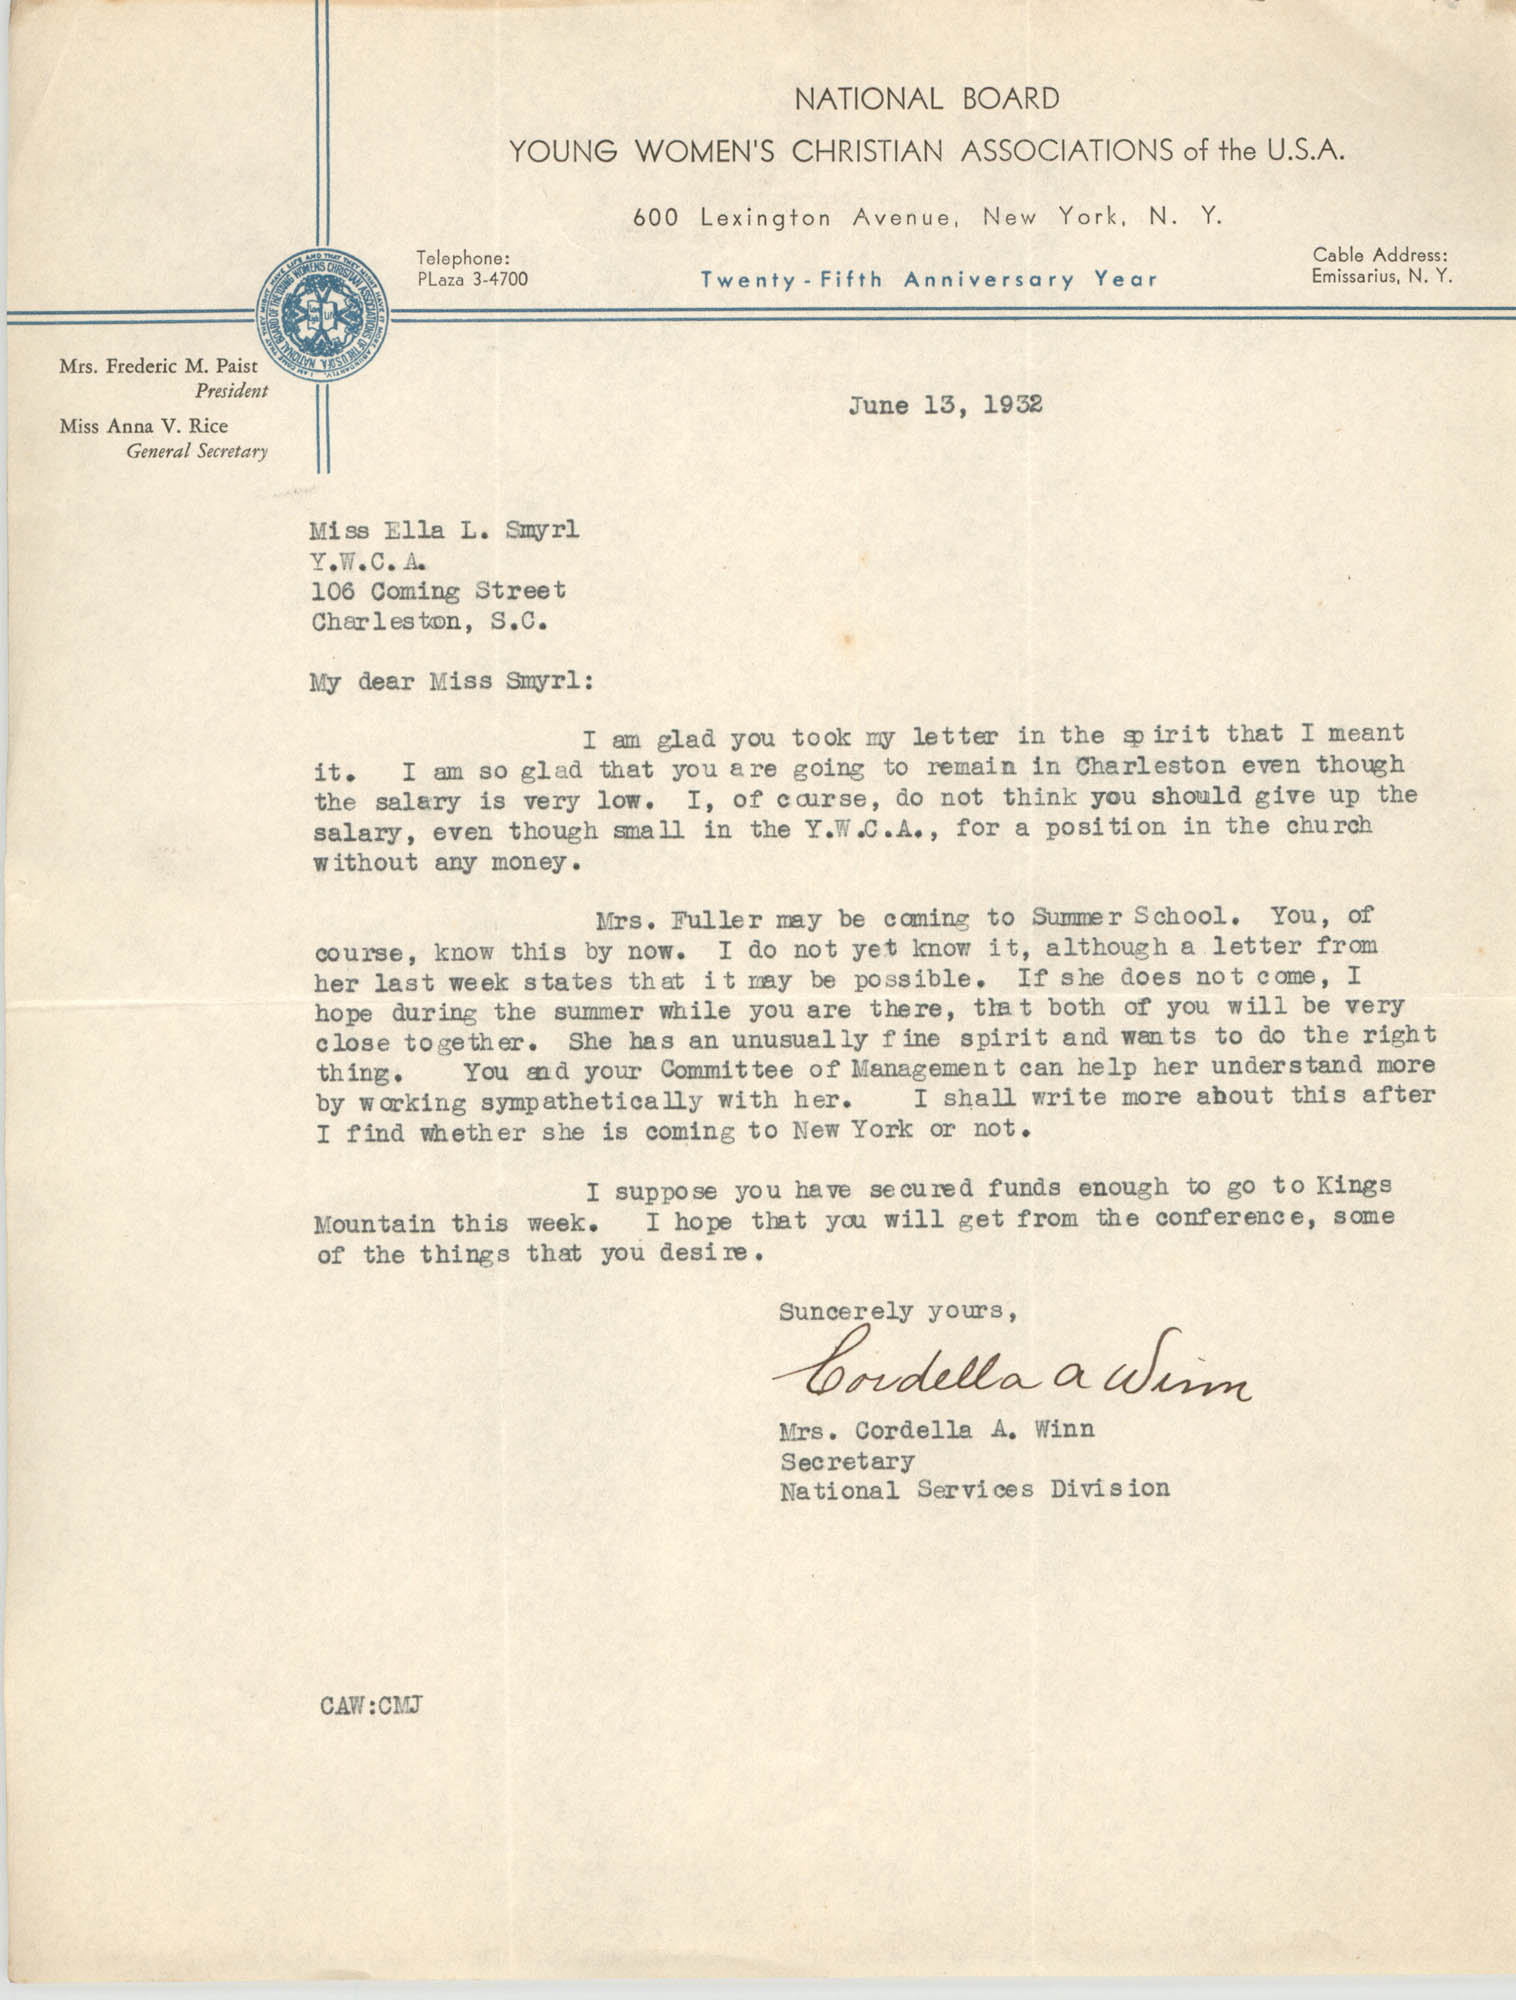 Letter from Cordella A. Winn to Ella L. Smyrl, June 13, 1932